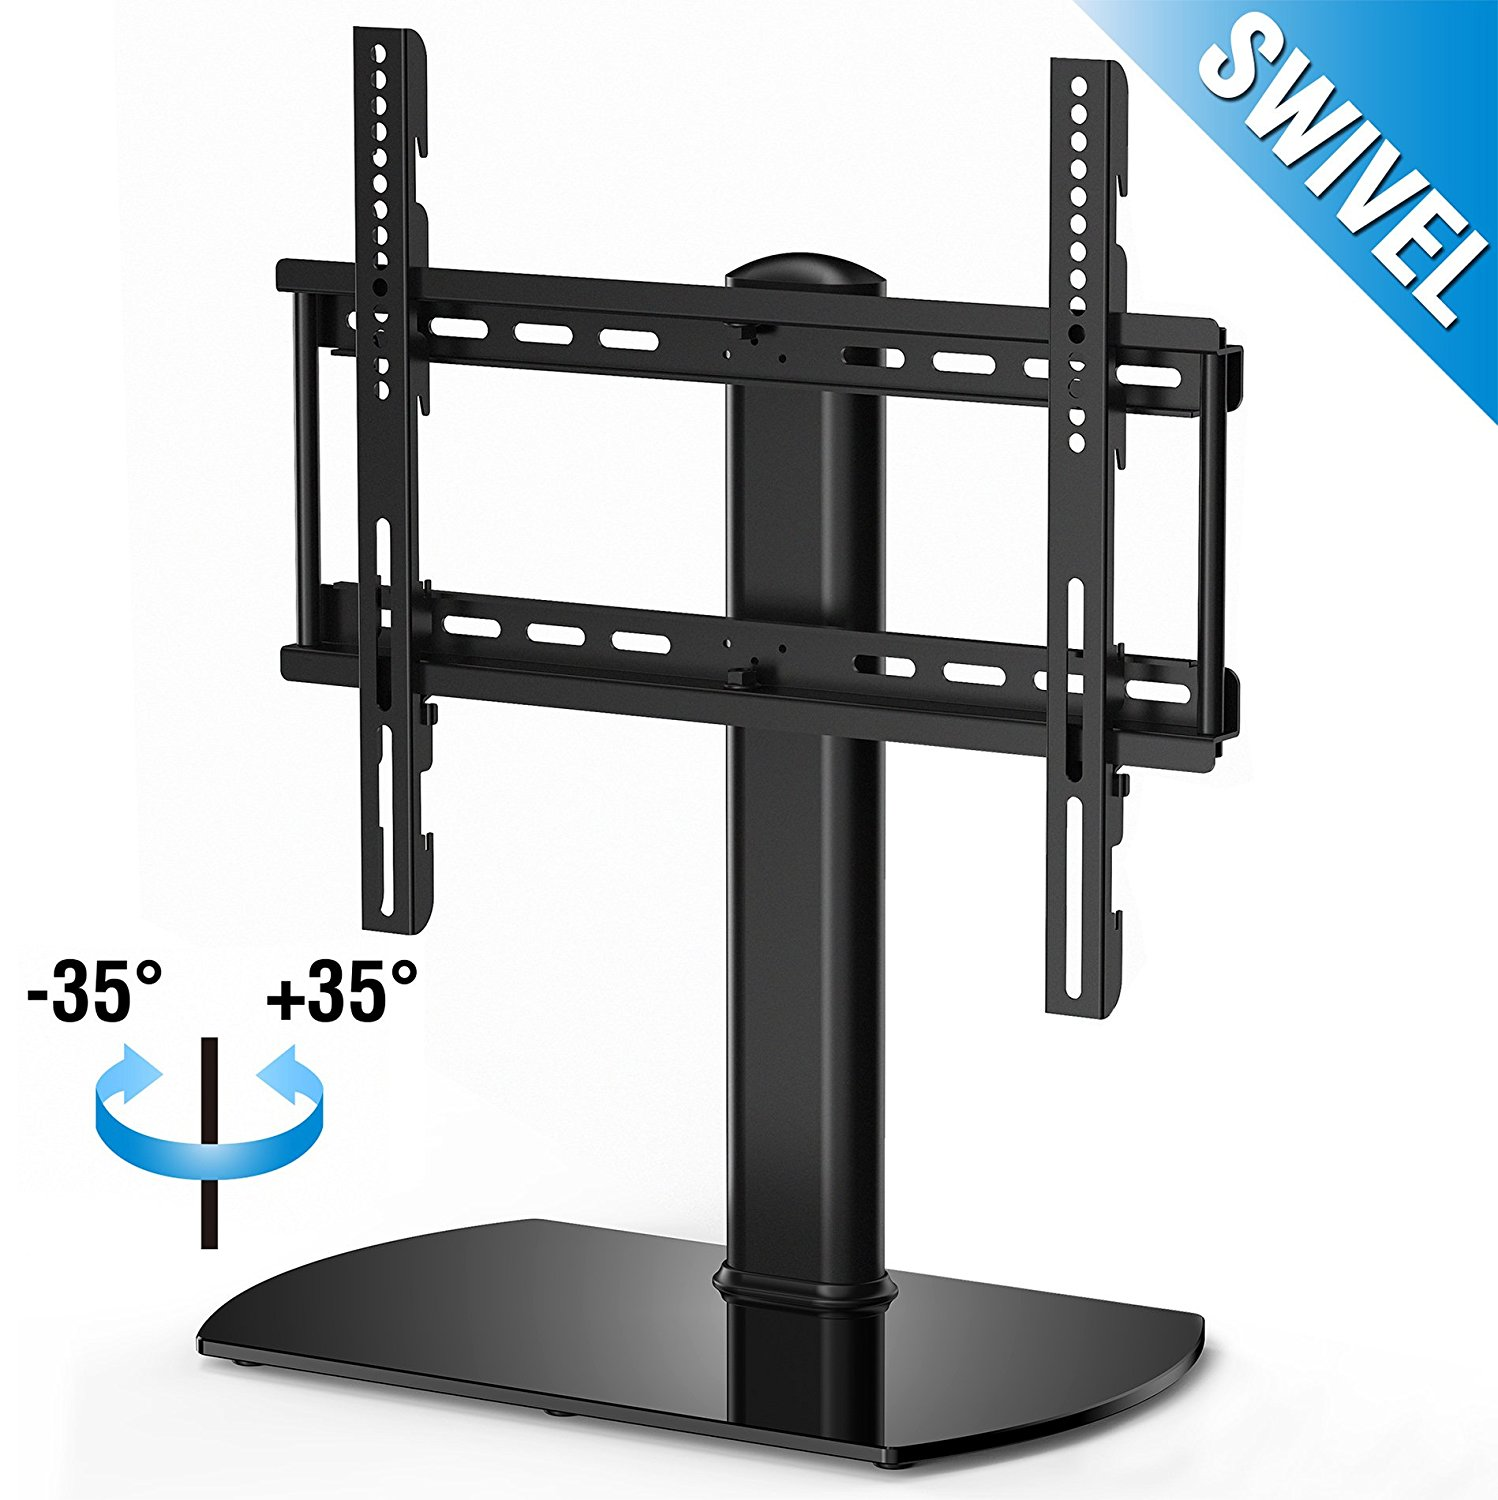 Fitueyes Universal Swivel Tabletop TV Stand Base with mount for 32 37 40 42 45 50 inch Samsung Vizio Tv TT104501GBF